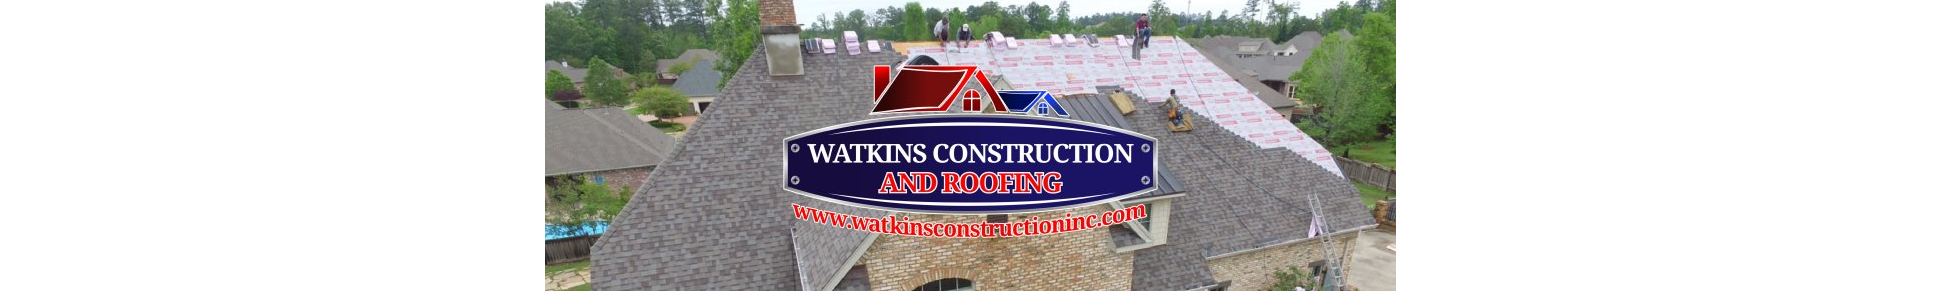 Watkins Construction Amp Roofing Jackson Ms 39209 Networx